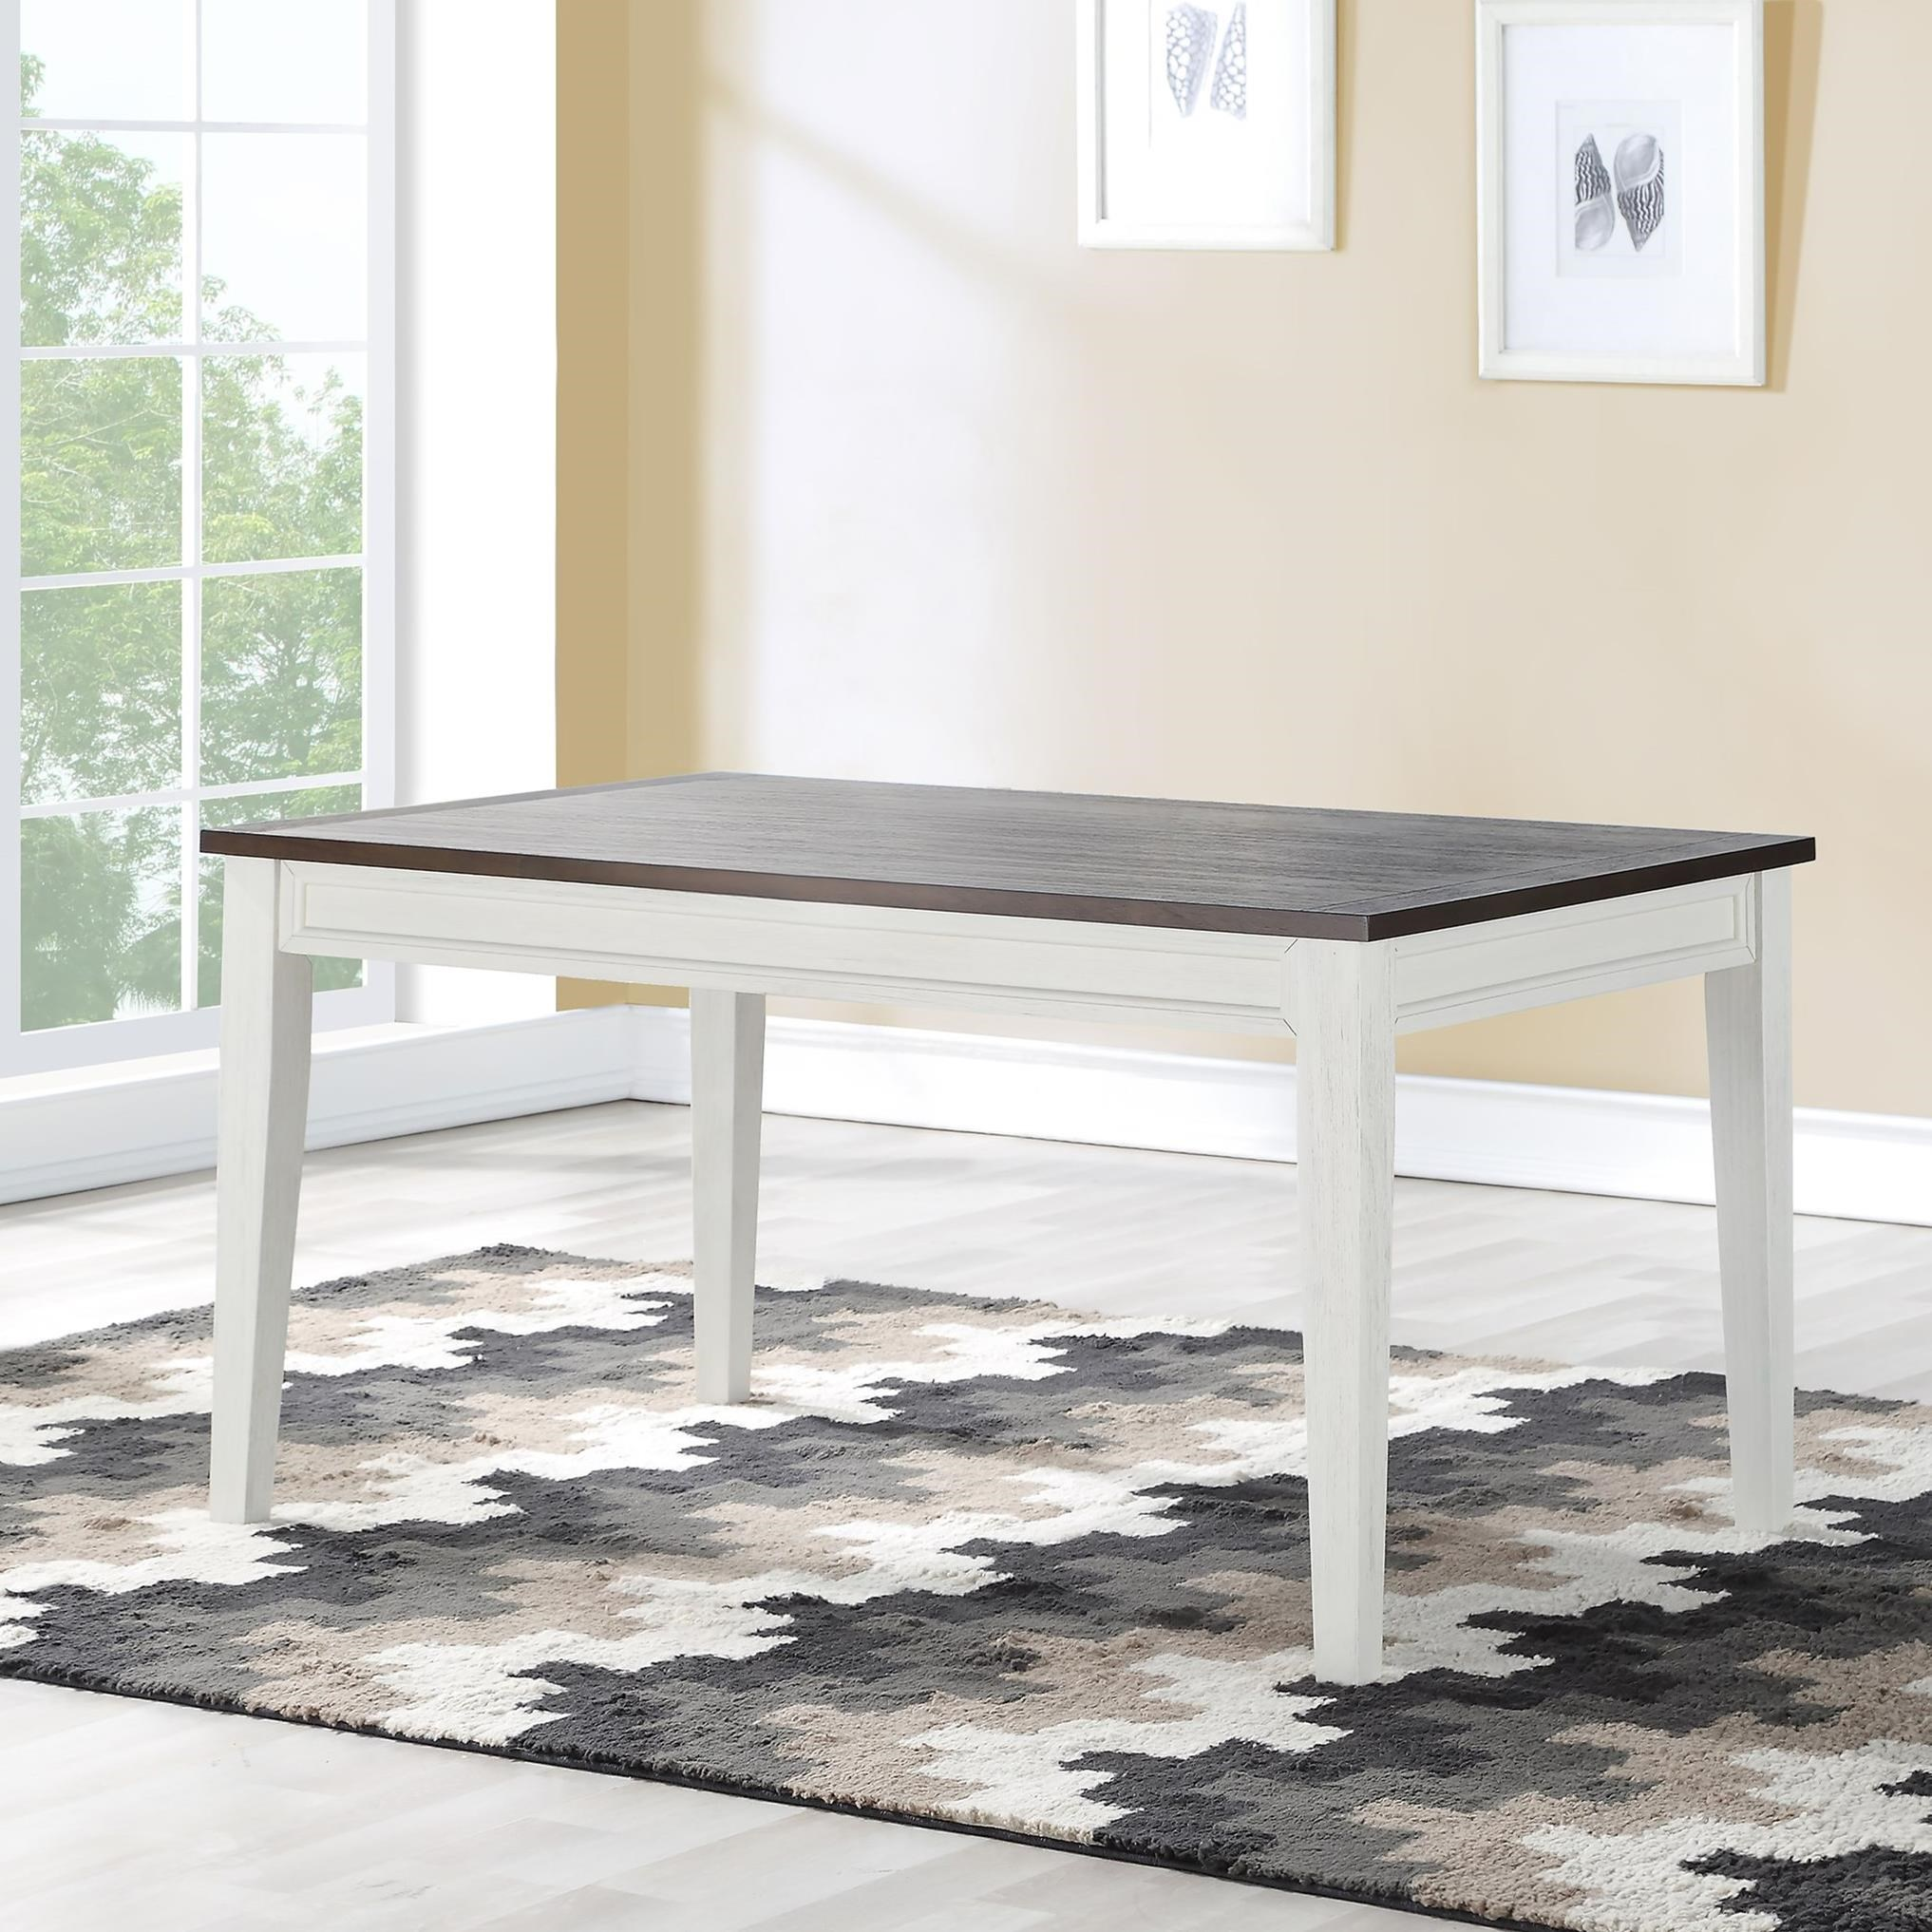 Caylie Dining Table by Steve Silver at Northeast Factory Direct